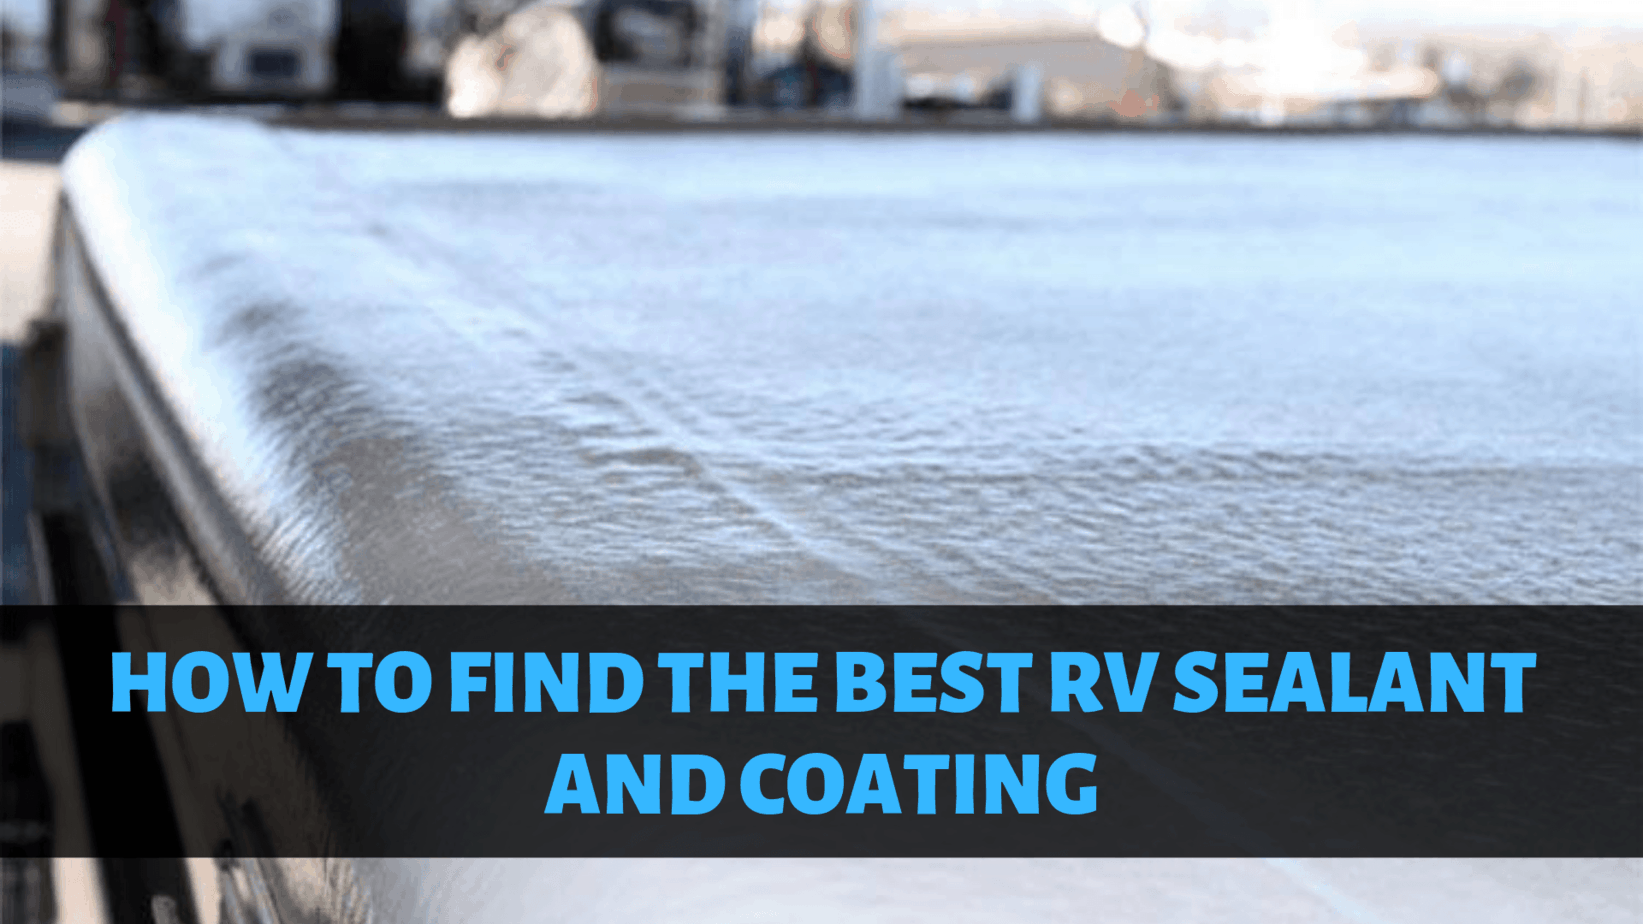 How to Find the Best RV Sealant and Coating